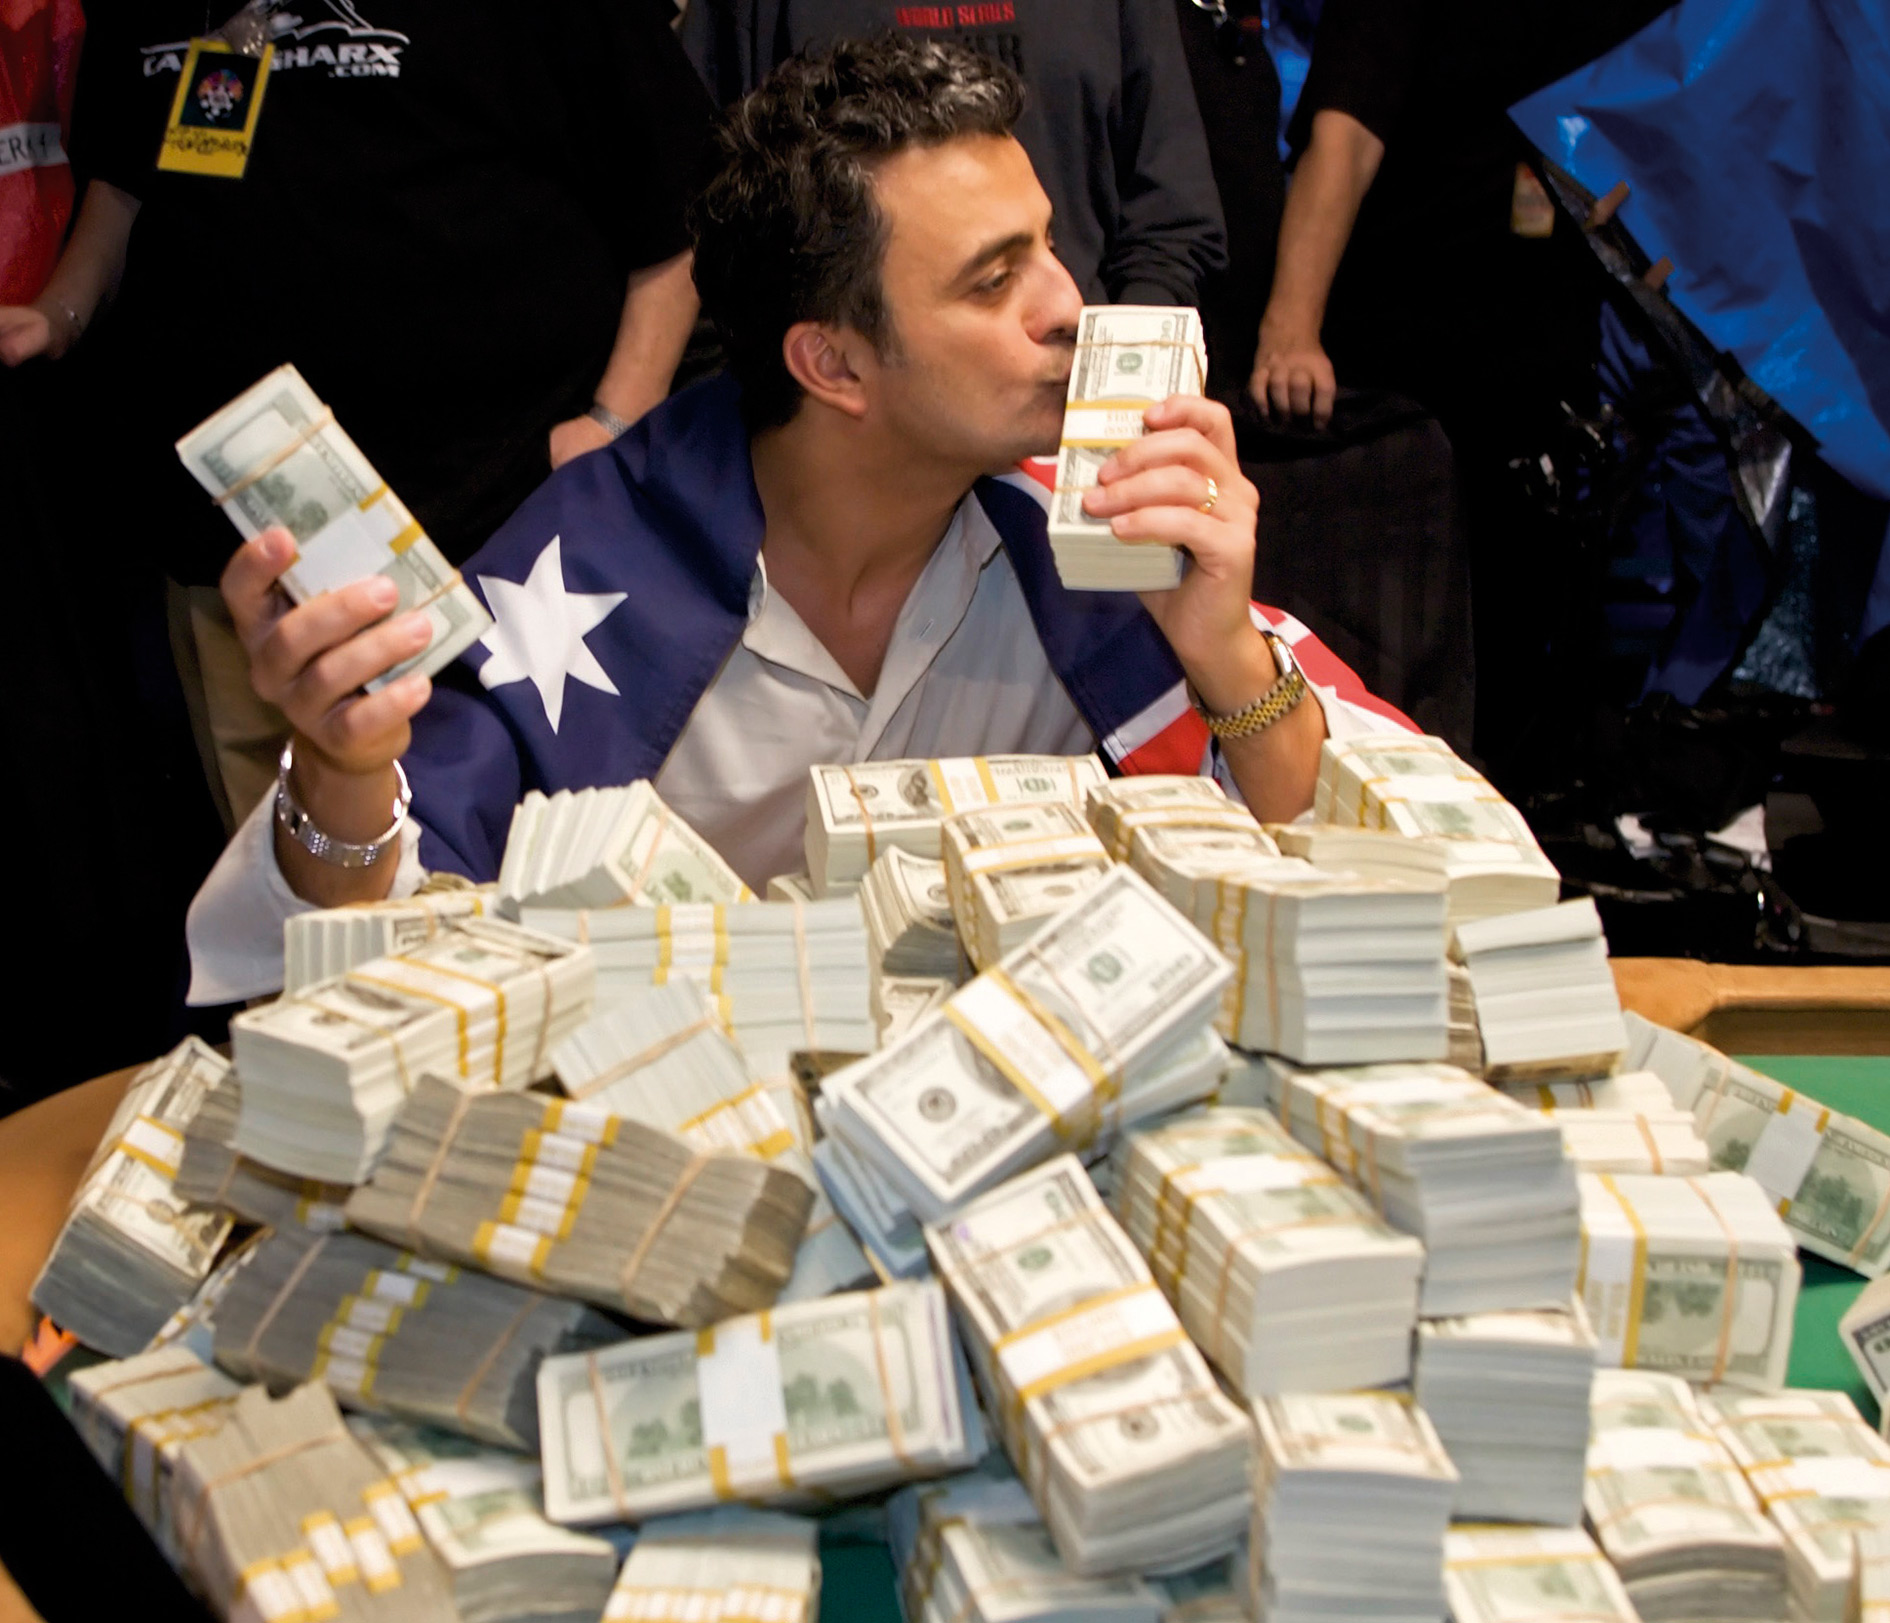 Worldbeater: Joseph Hackem celebrates winning $7.5 million at the World Series Poker Championship in 2005.